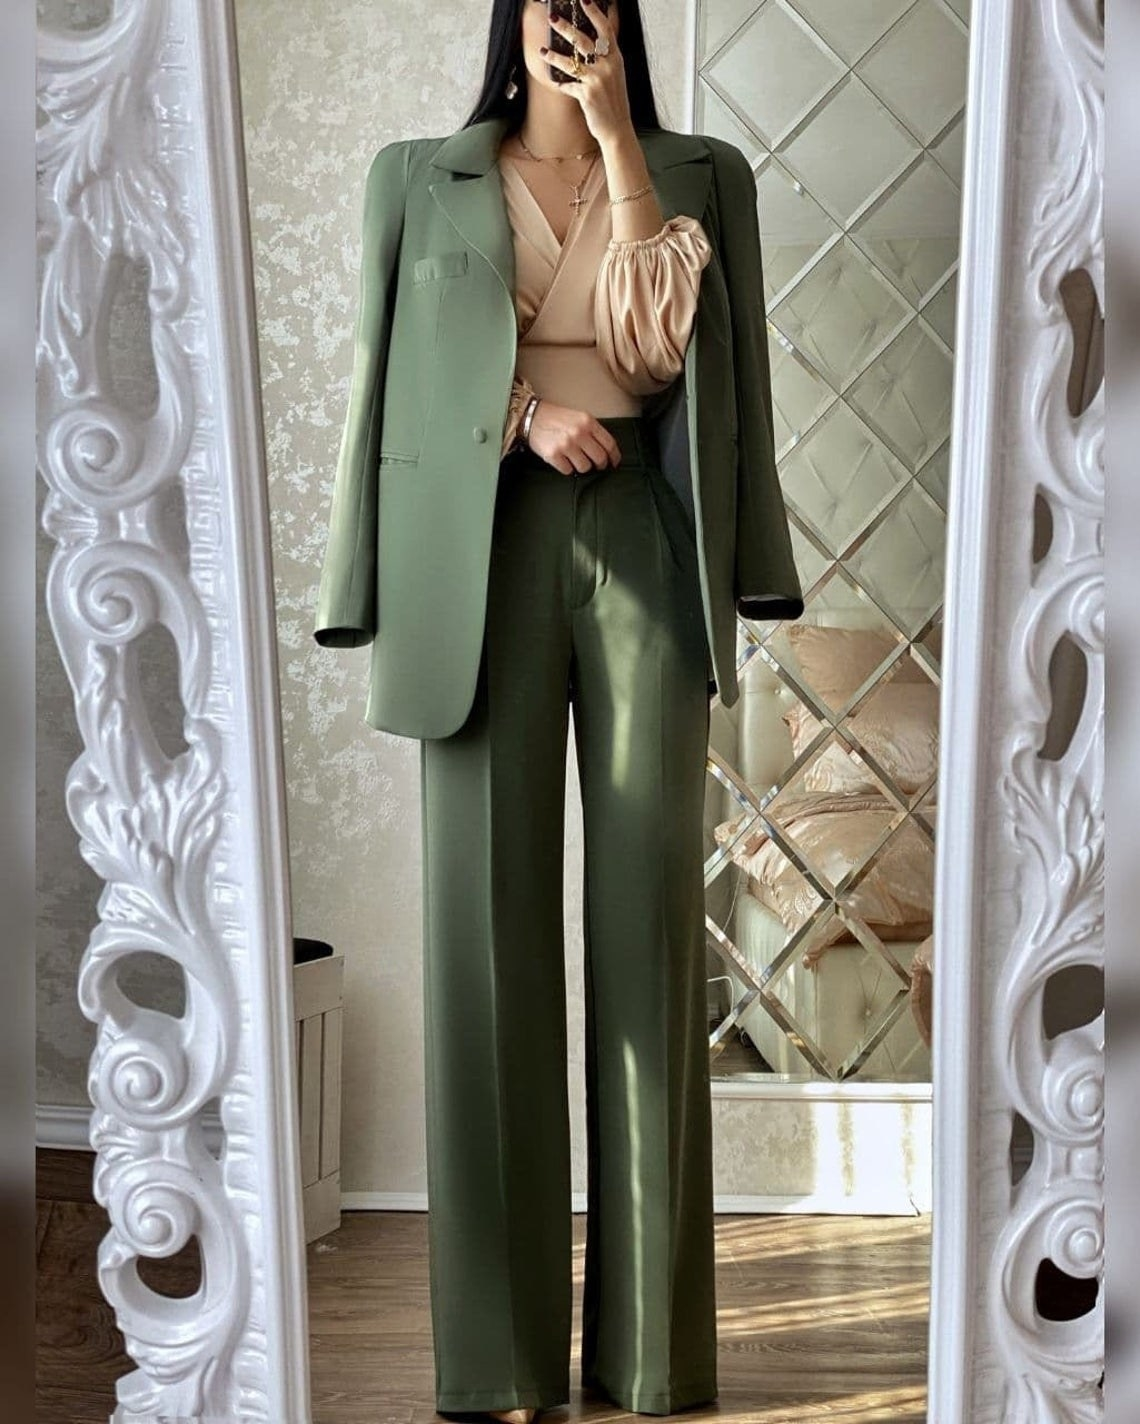 A model taking a mirror selfie in the green suit